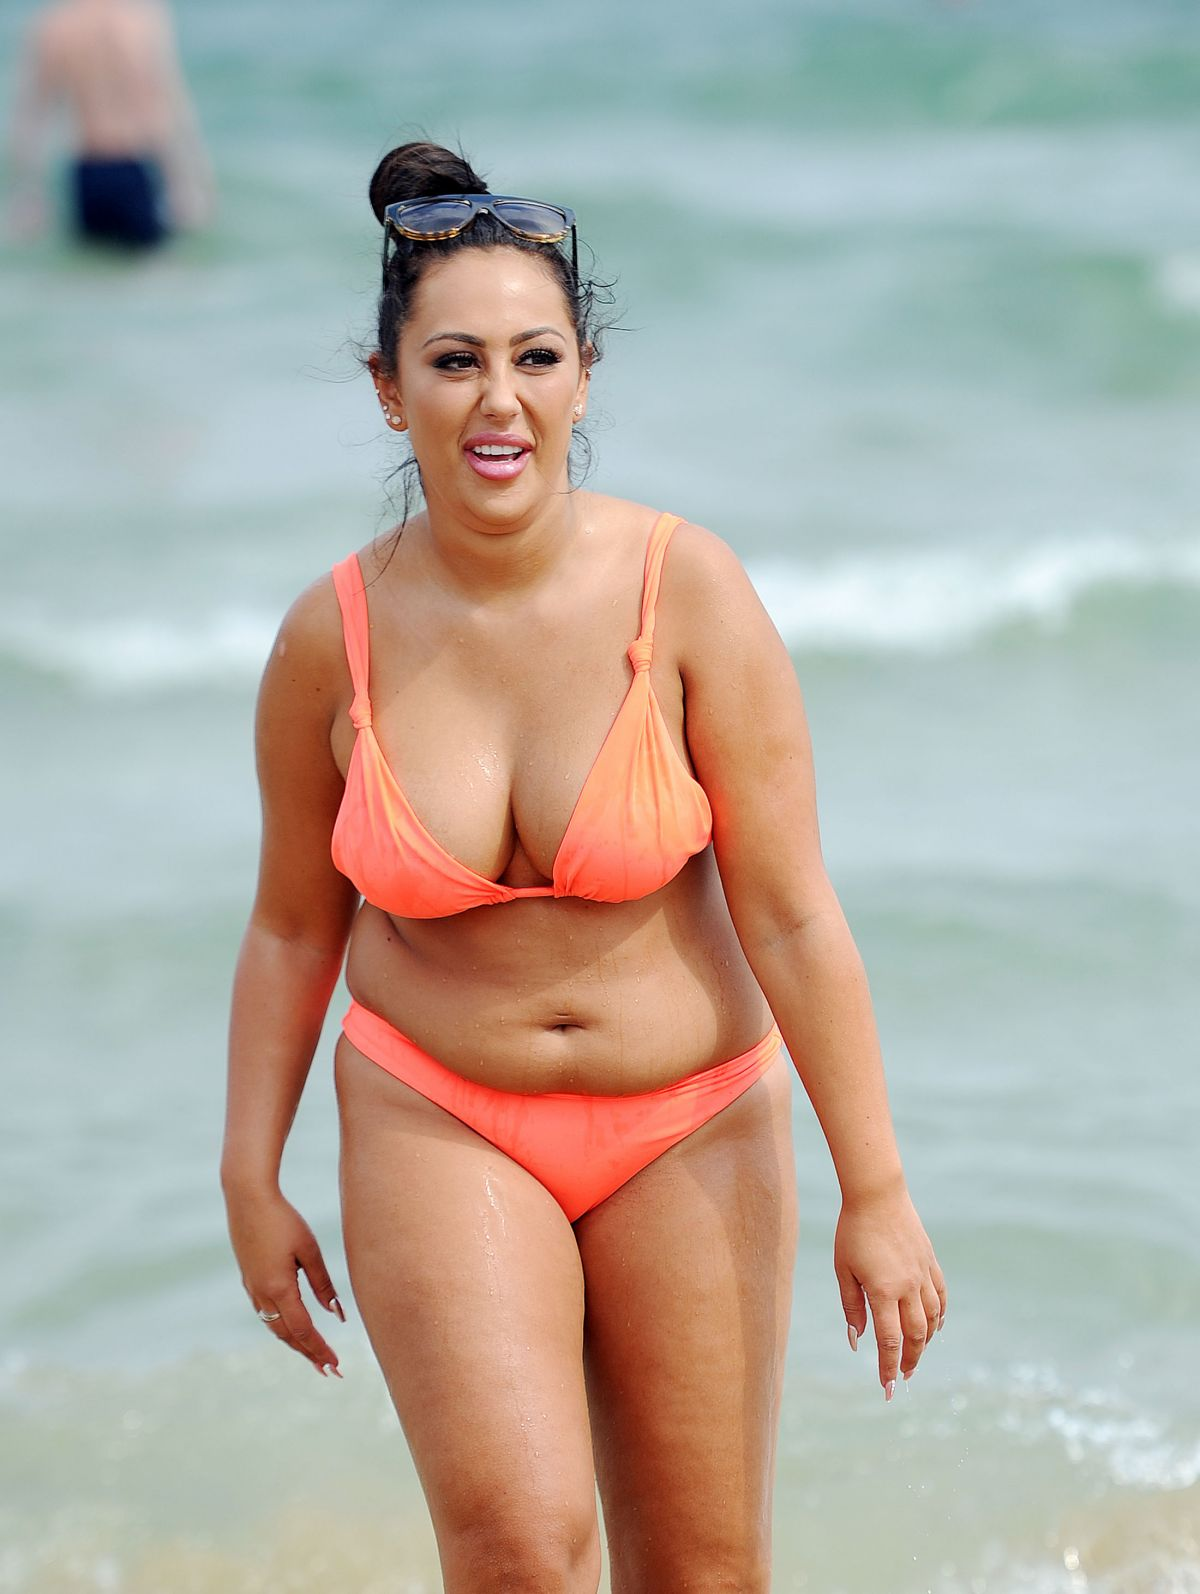 Sophie Kasaei in Pink Bikini on the beach in Lanzarote Pic 27 of 35